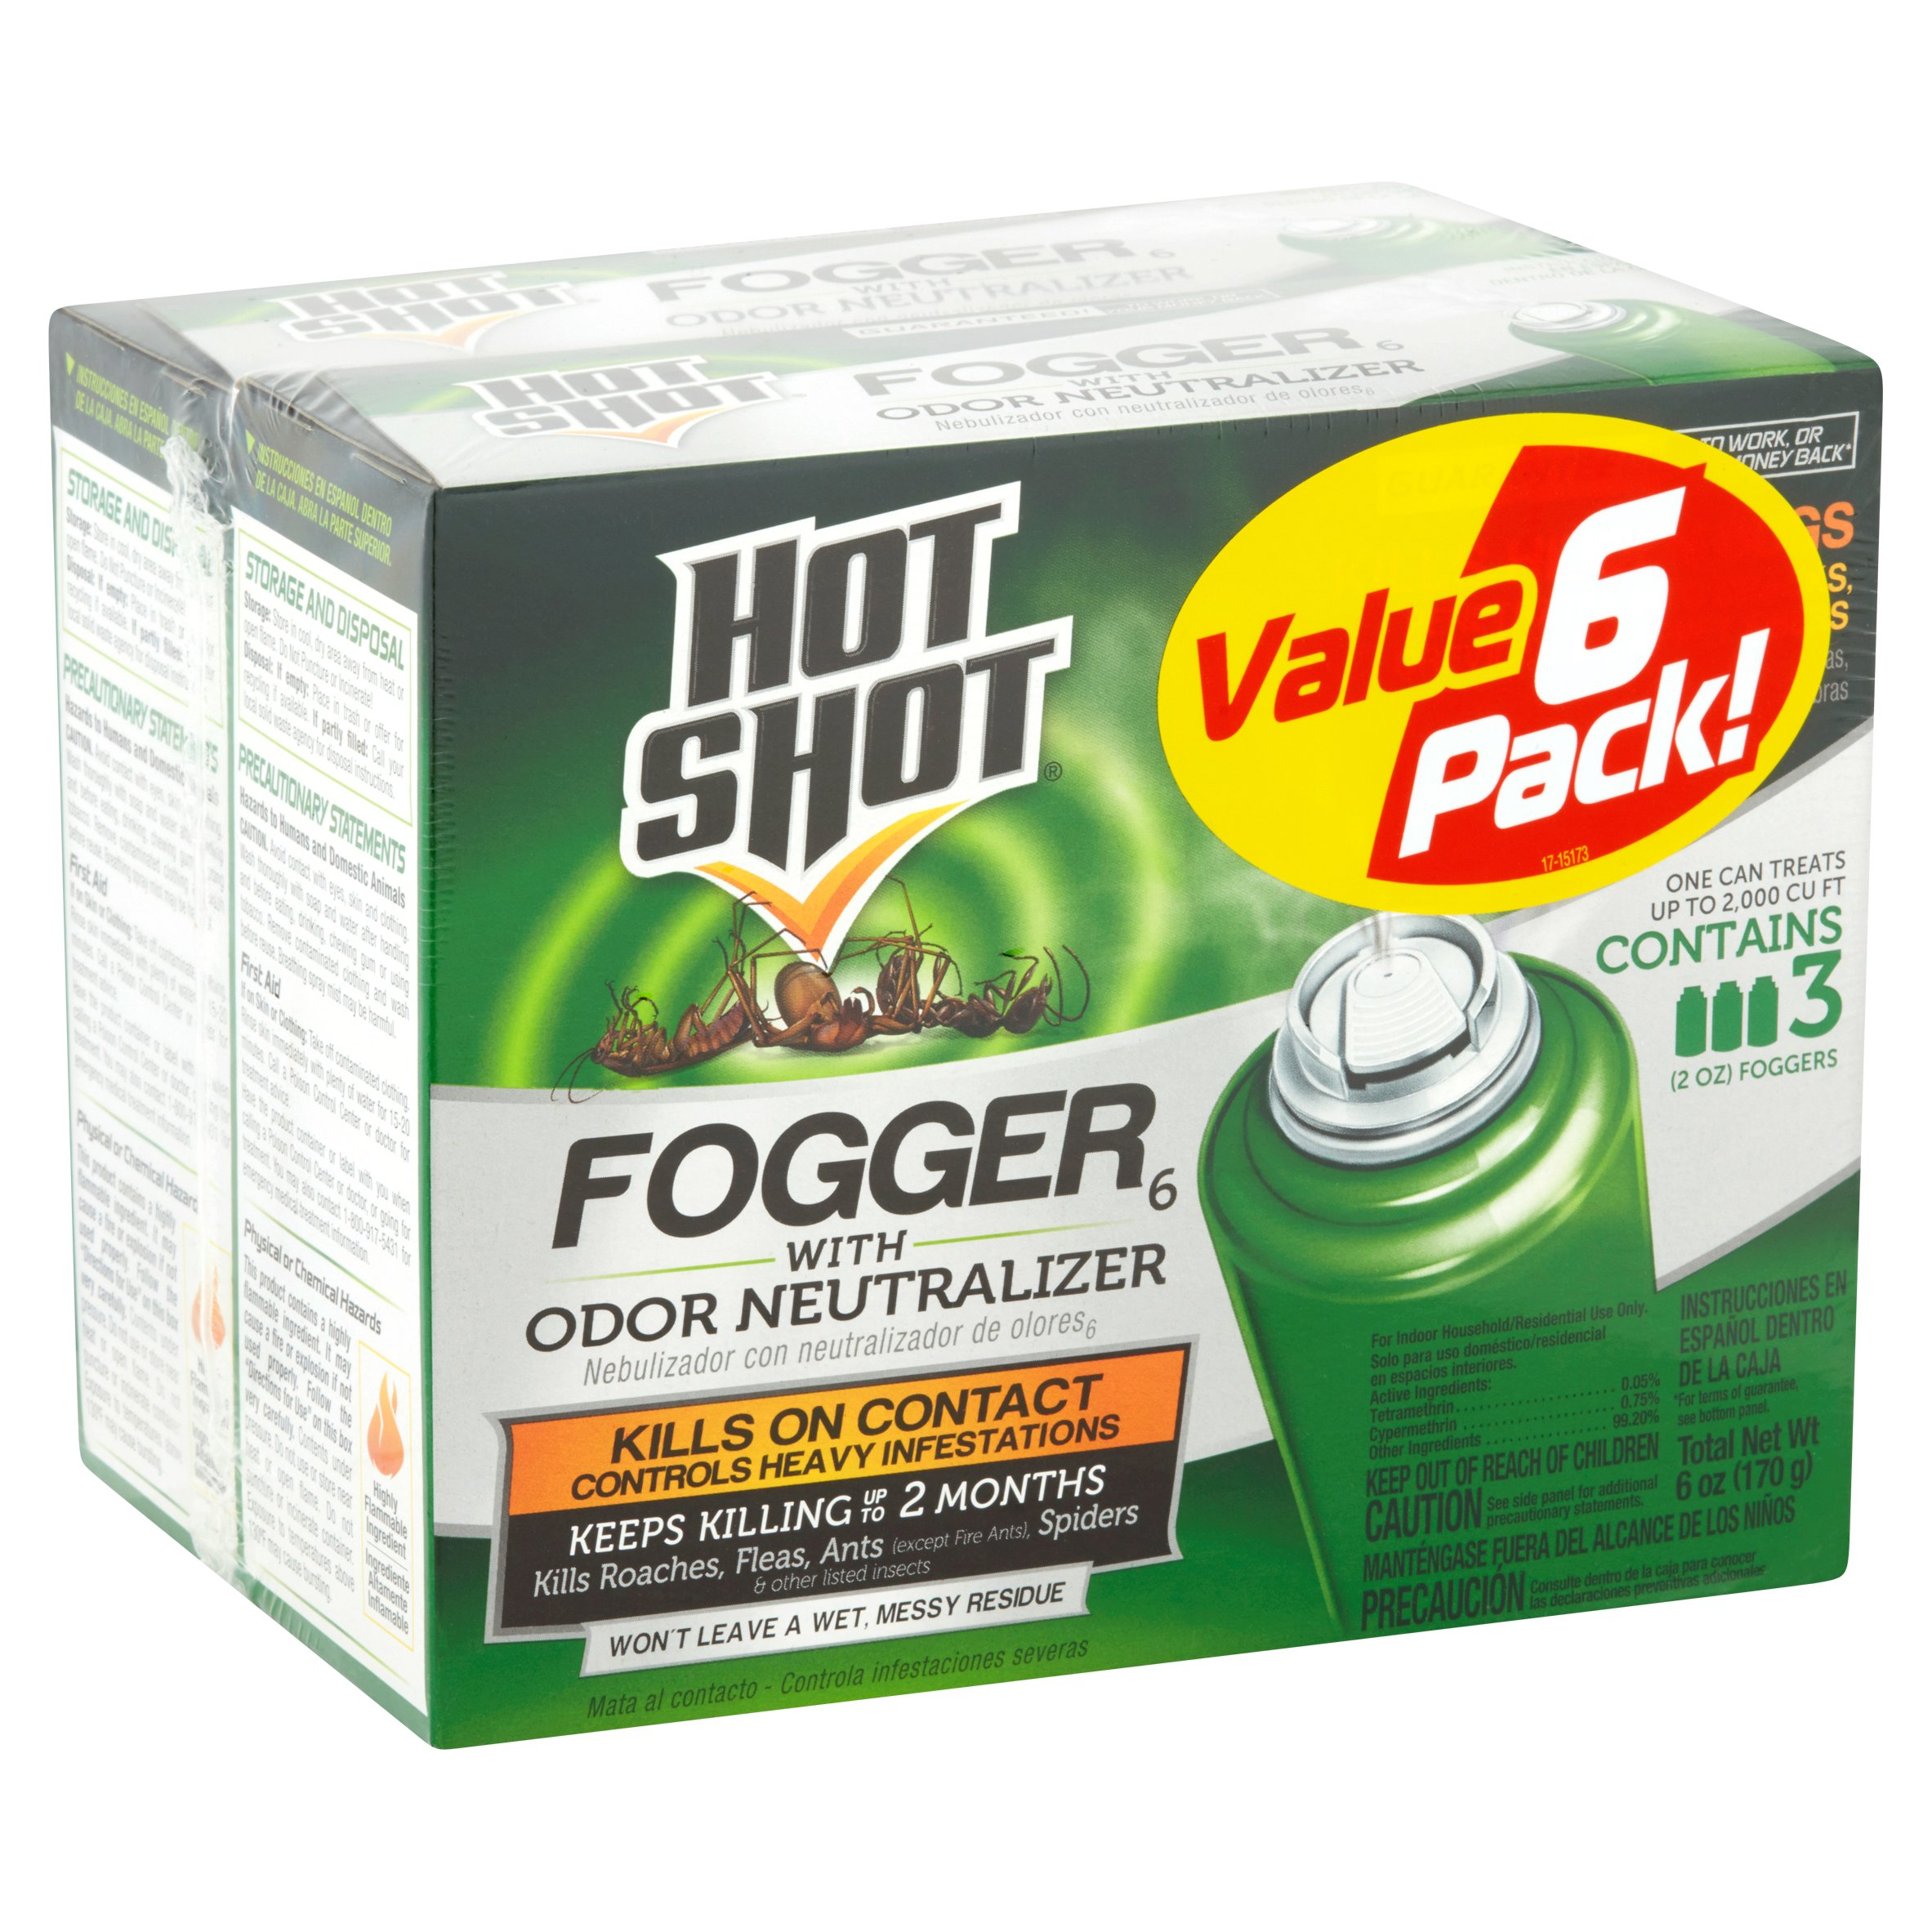 Hot Shot Fogger with Odor Neutralizer, 3-Pack, 2-Ounce